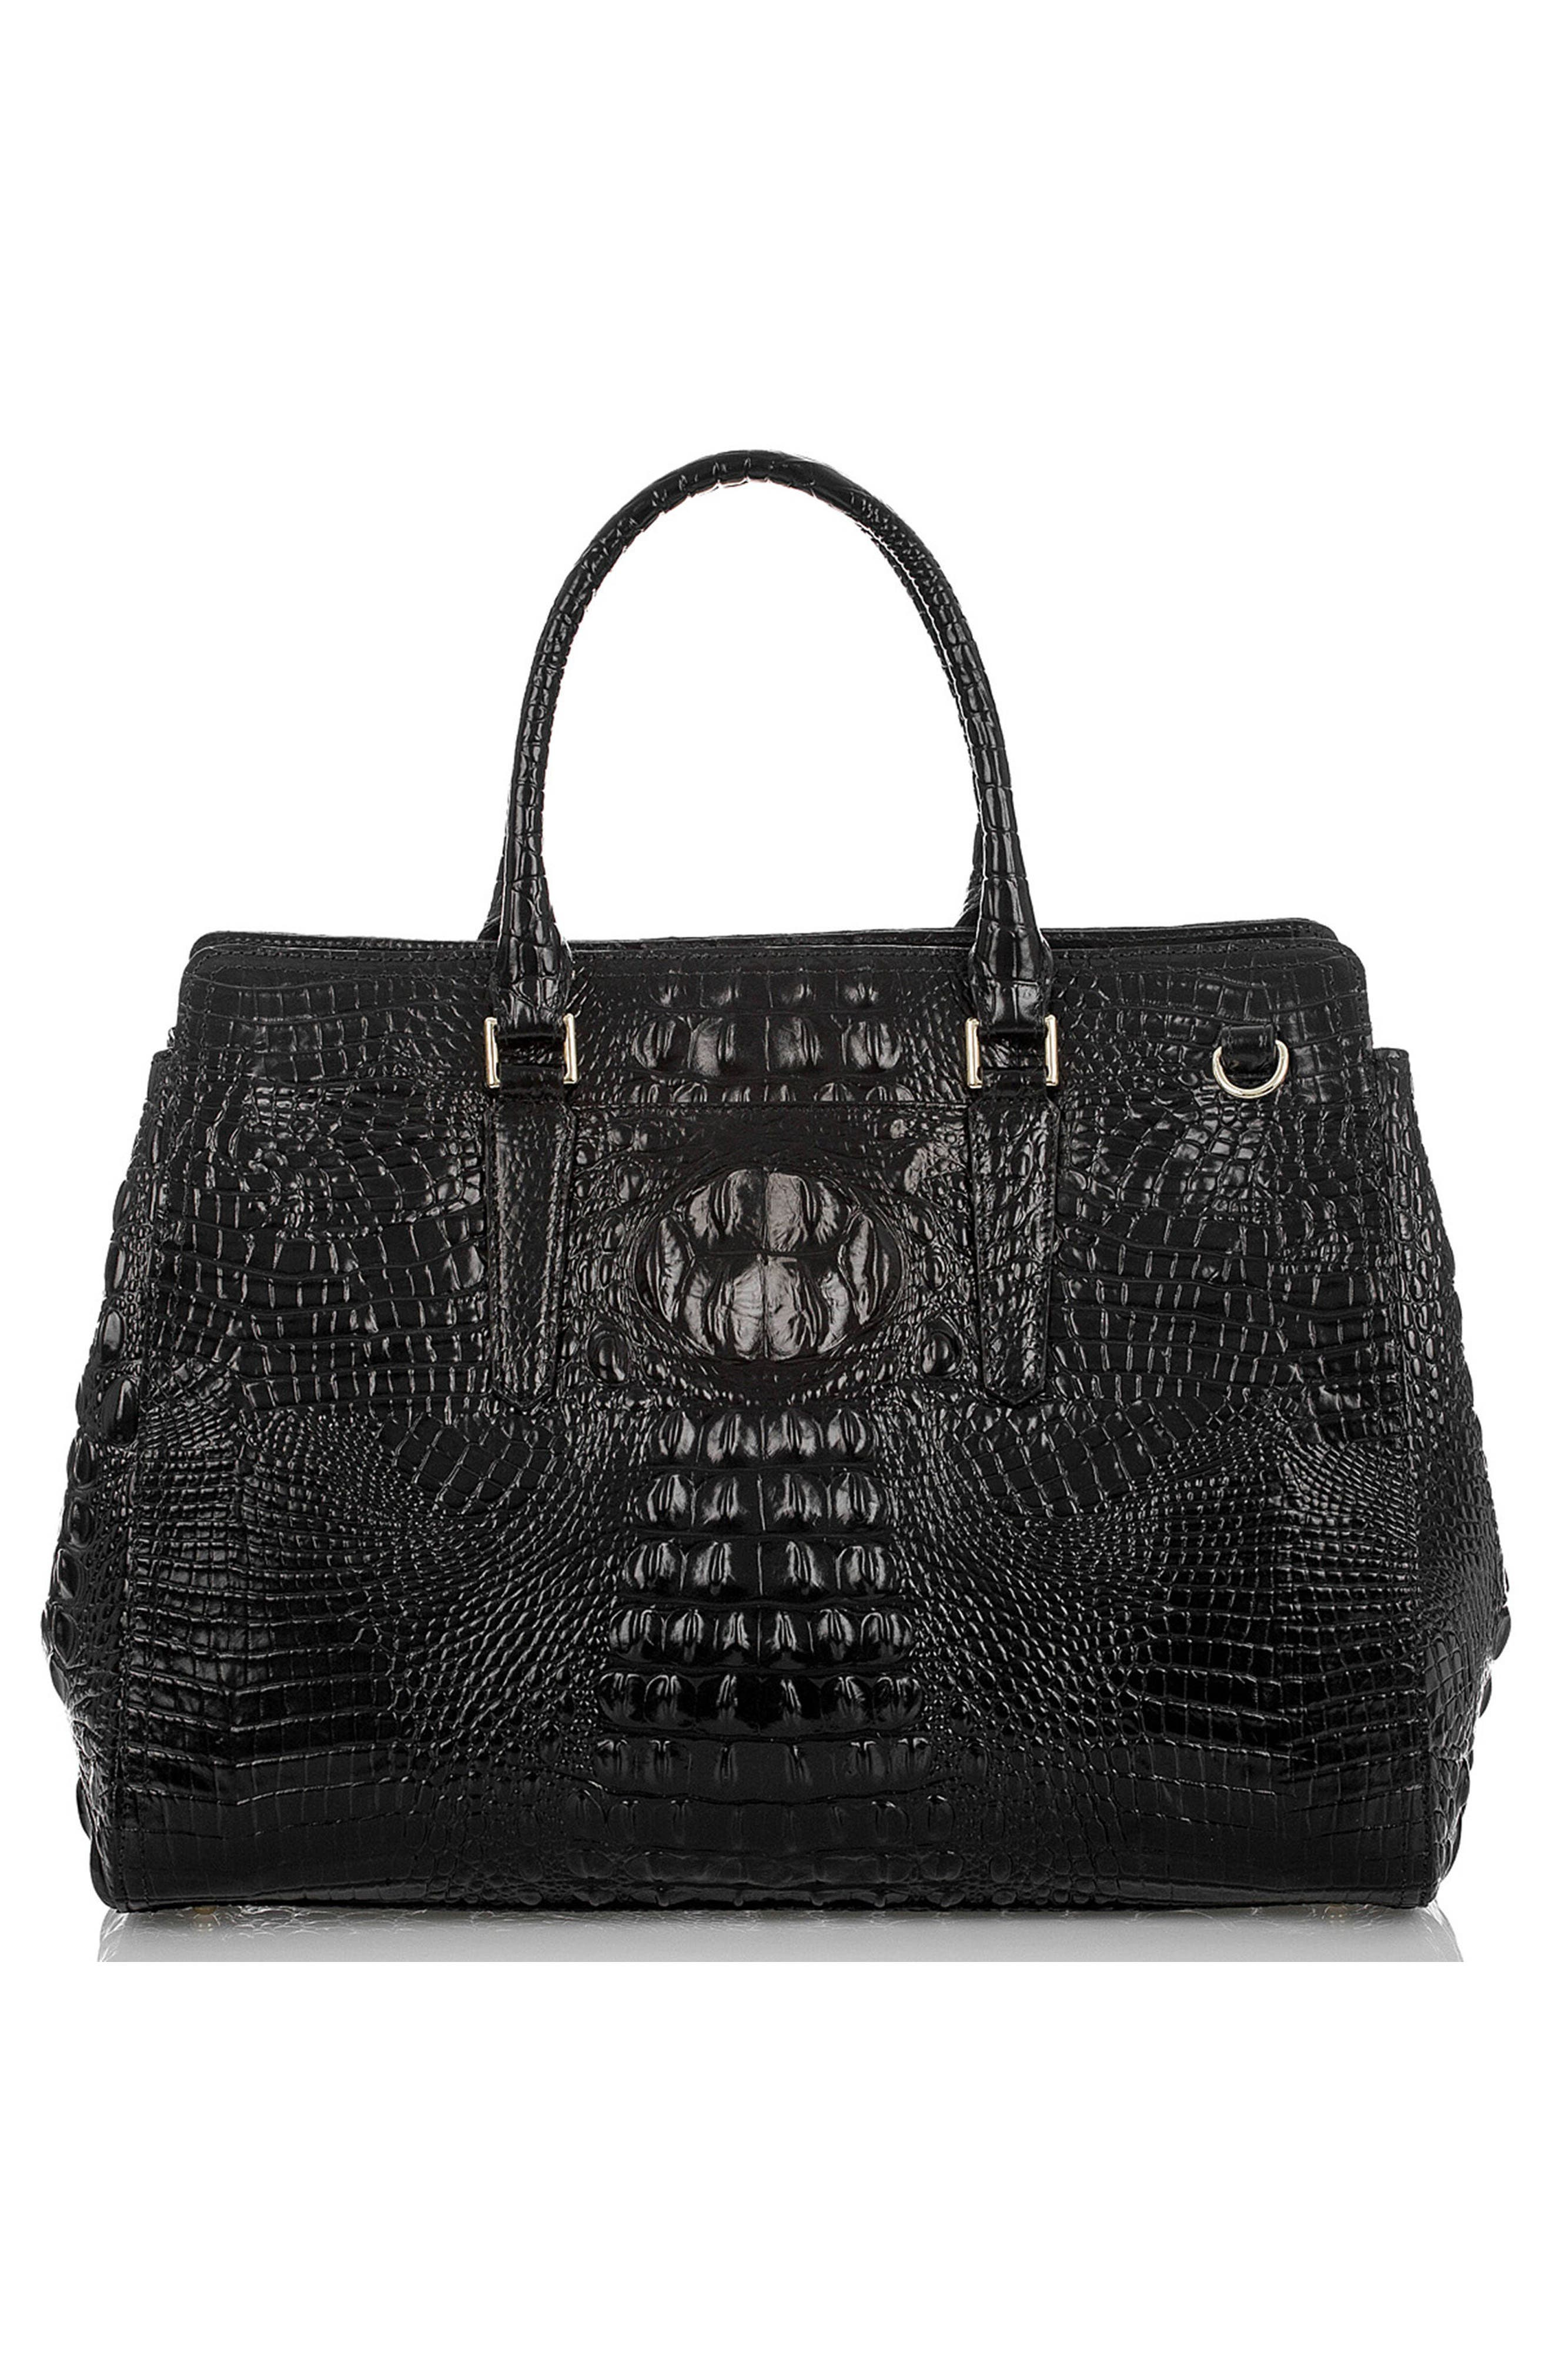 Finley Croc Embossed Leather Tote,                             Alternate thumbnail 3, color,                             001